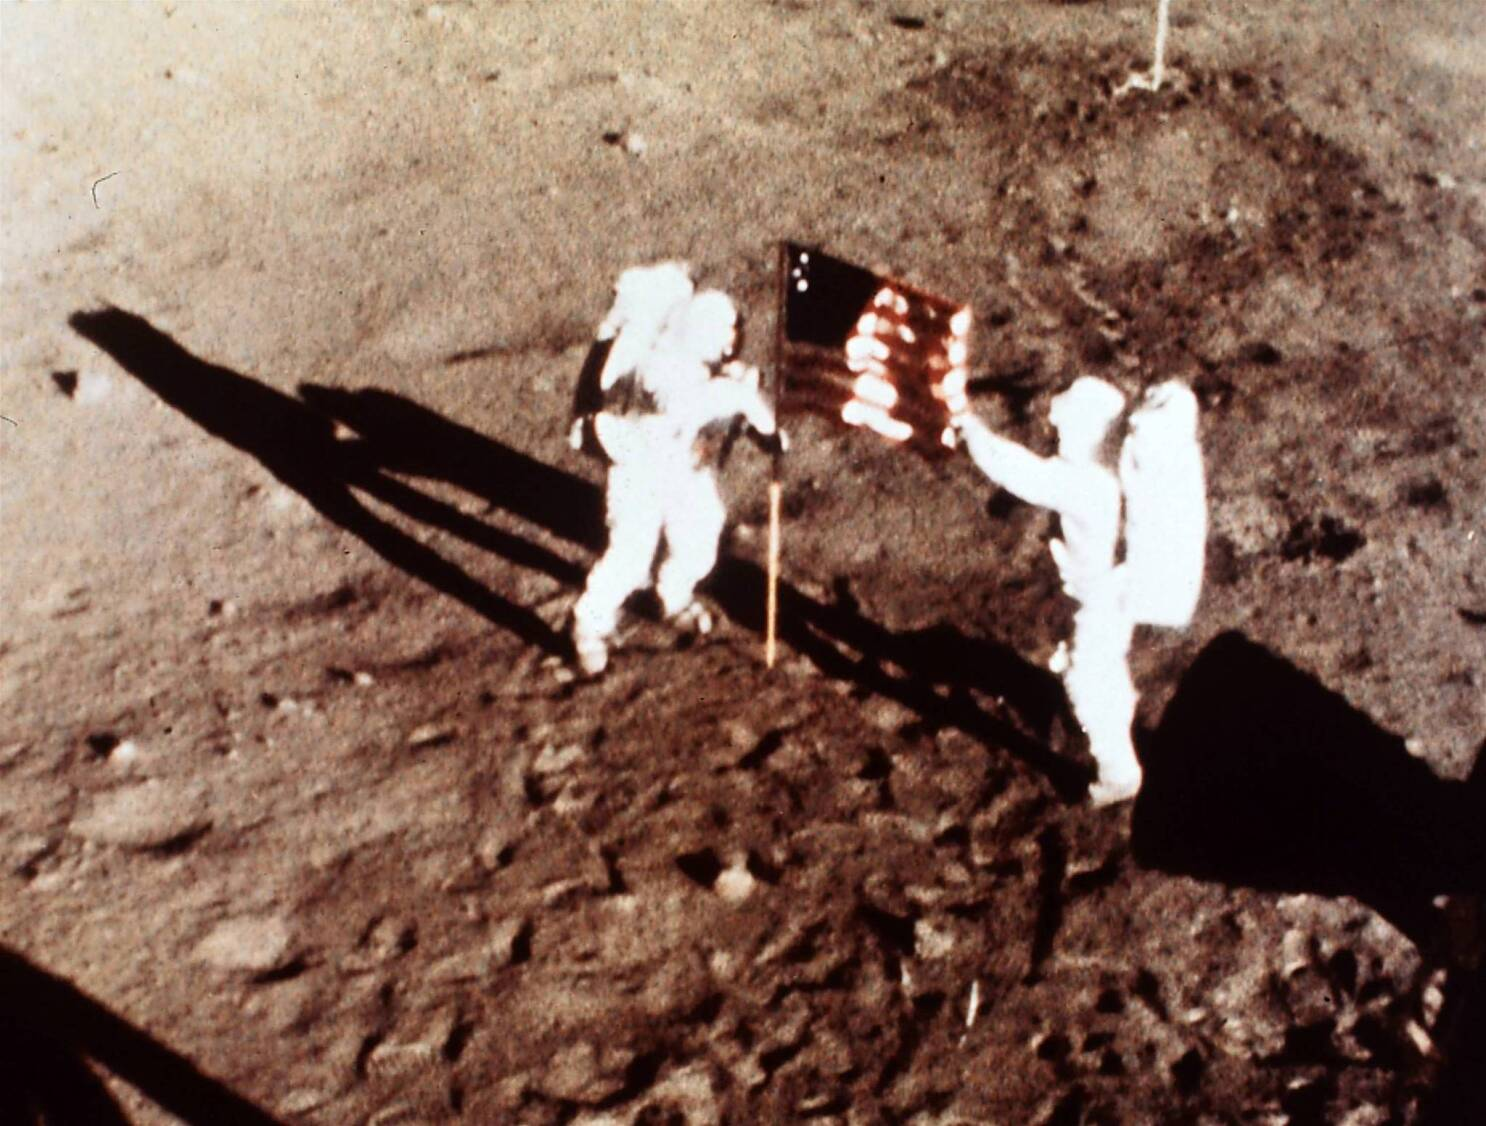 Editorial: We went to the moon